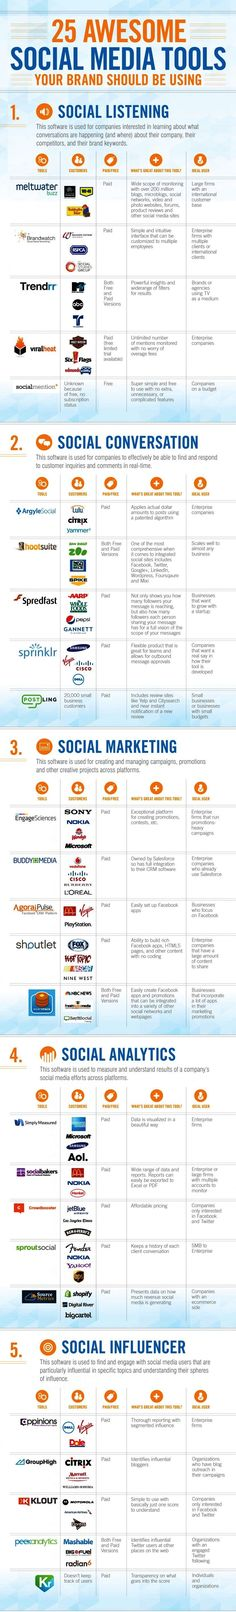 25 awesome social media tools. #socialmedia #marketing #infographic